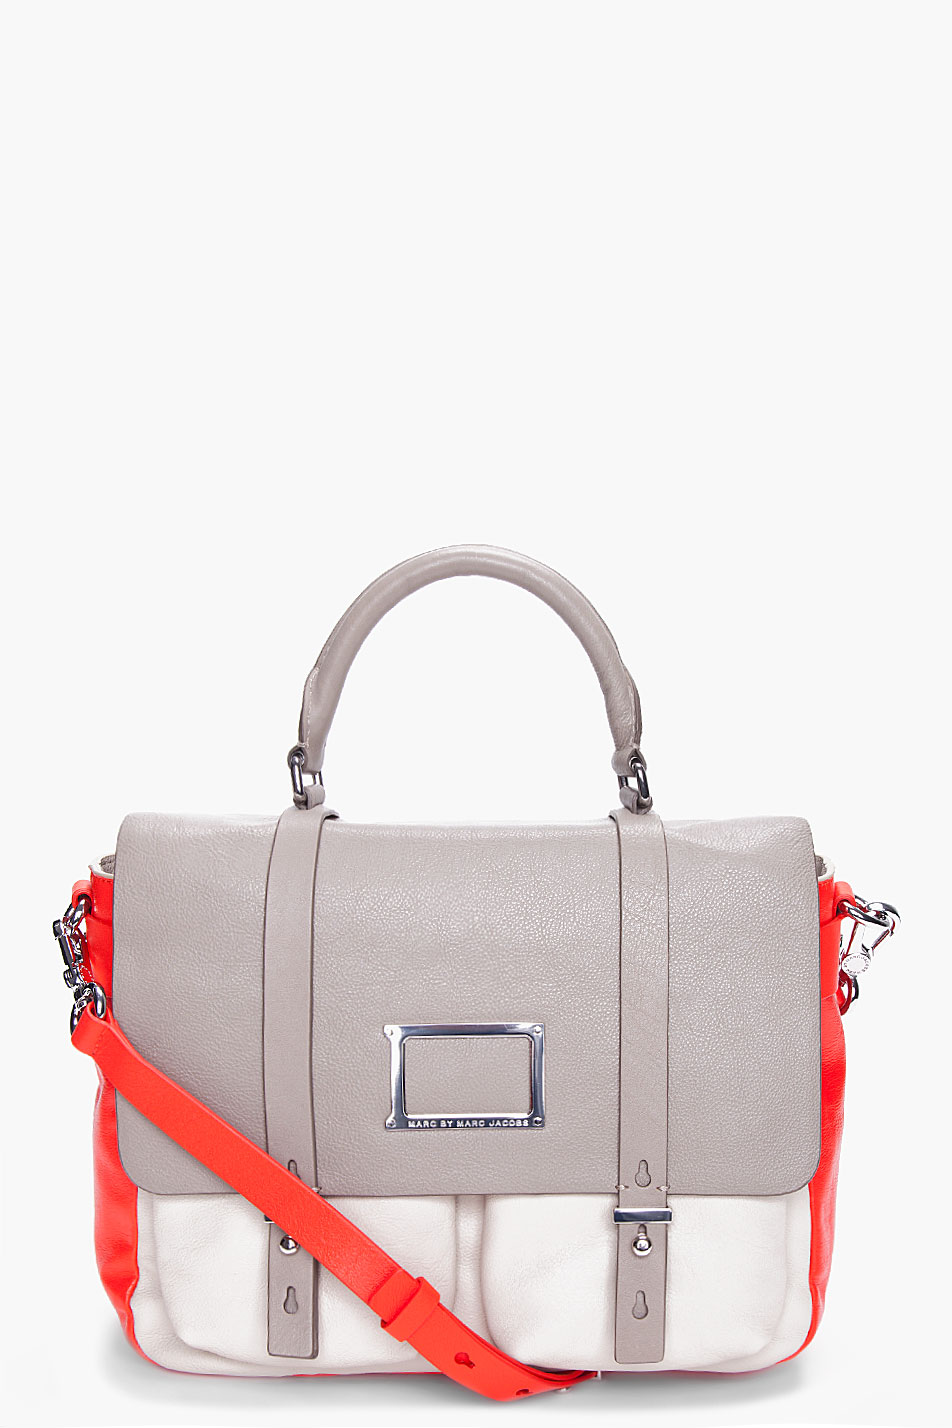 Shock Red Werdie Messenger Bag from Marc by Marc Jacobs